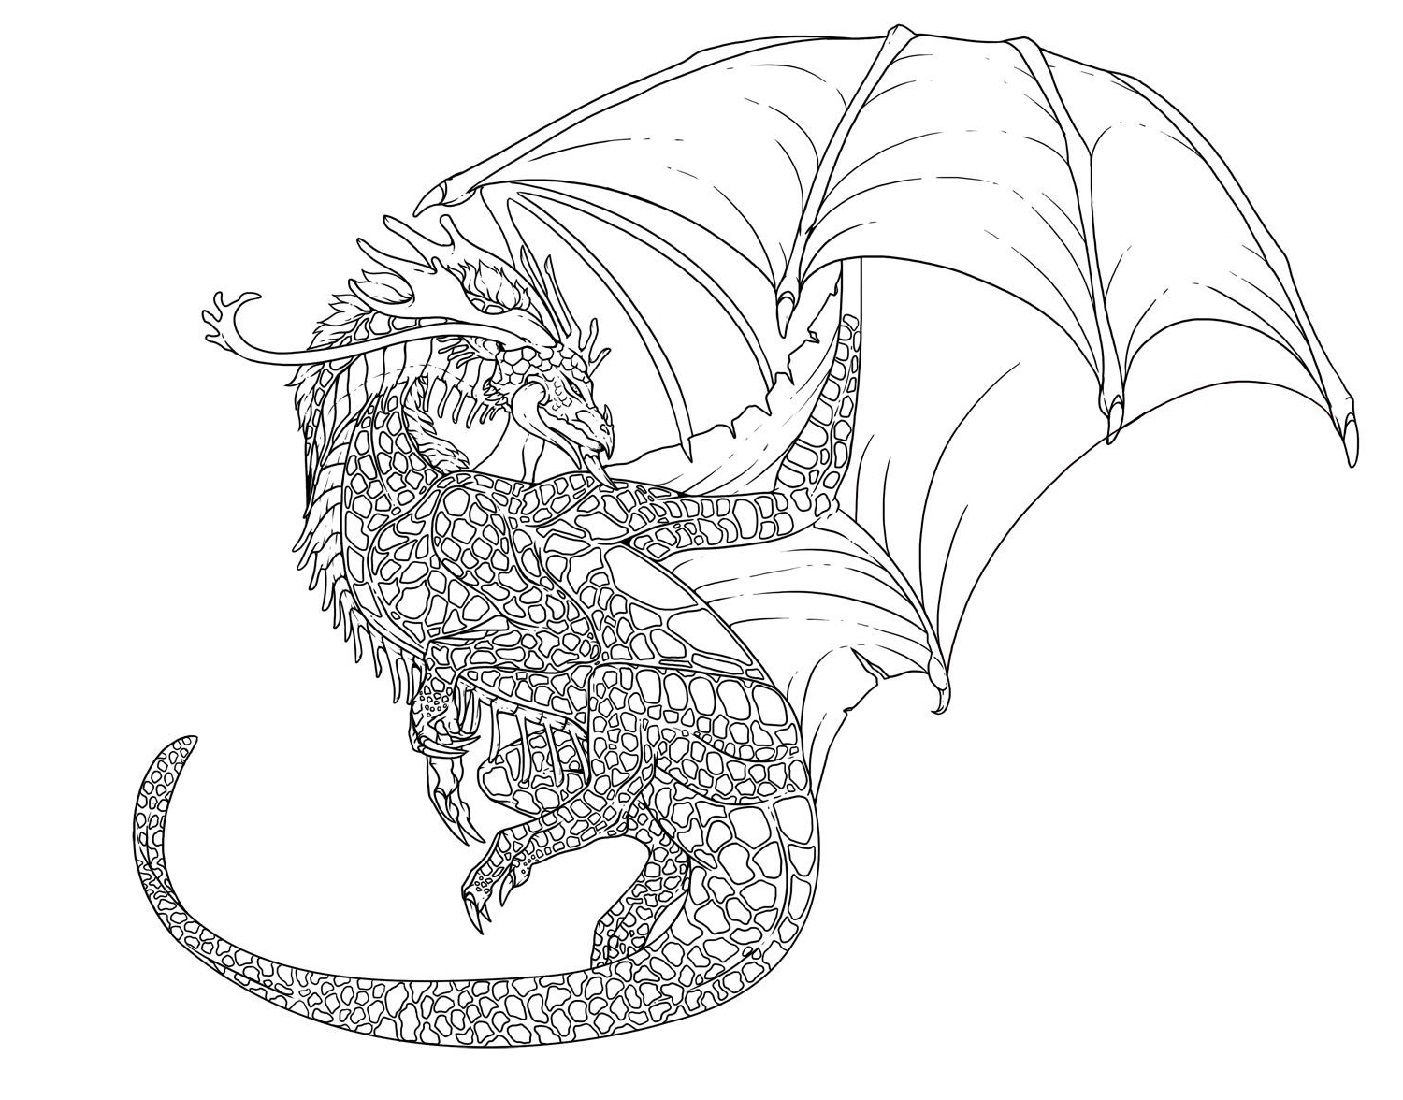 Awesome Dragon Coloring Pages